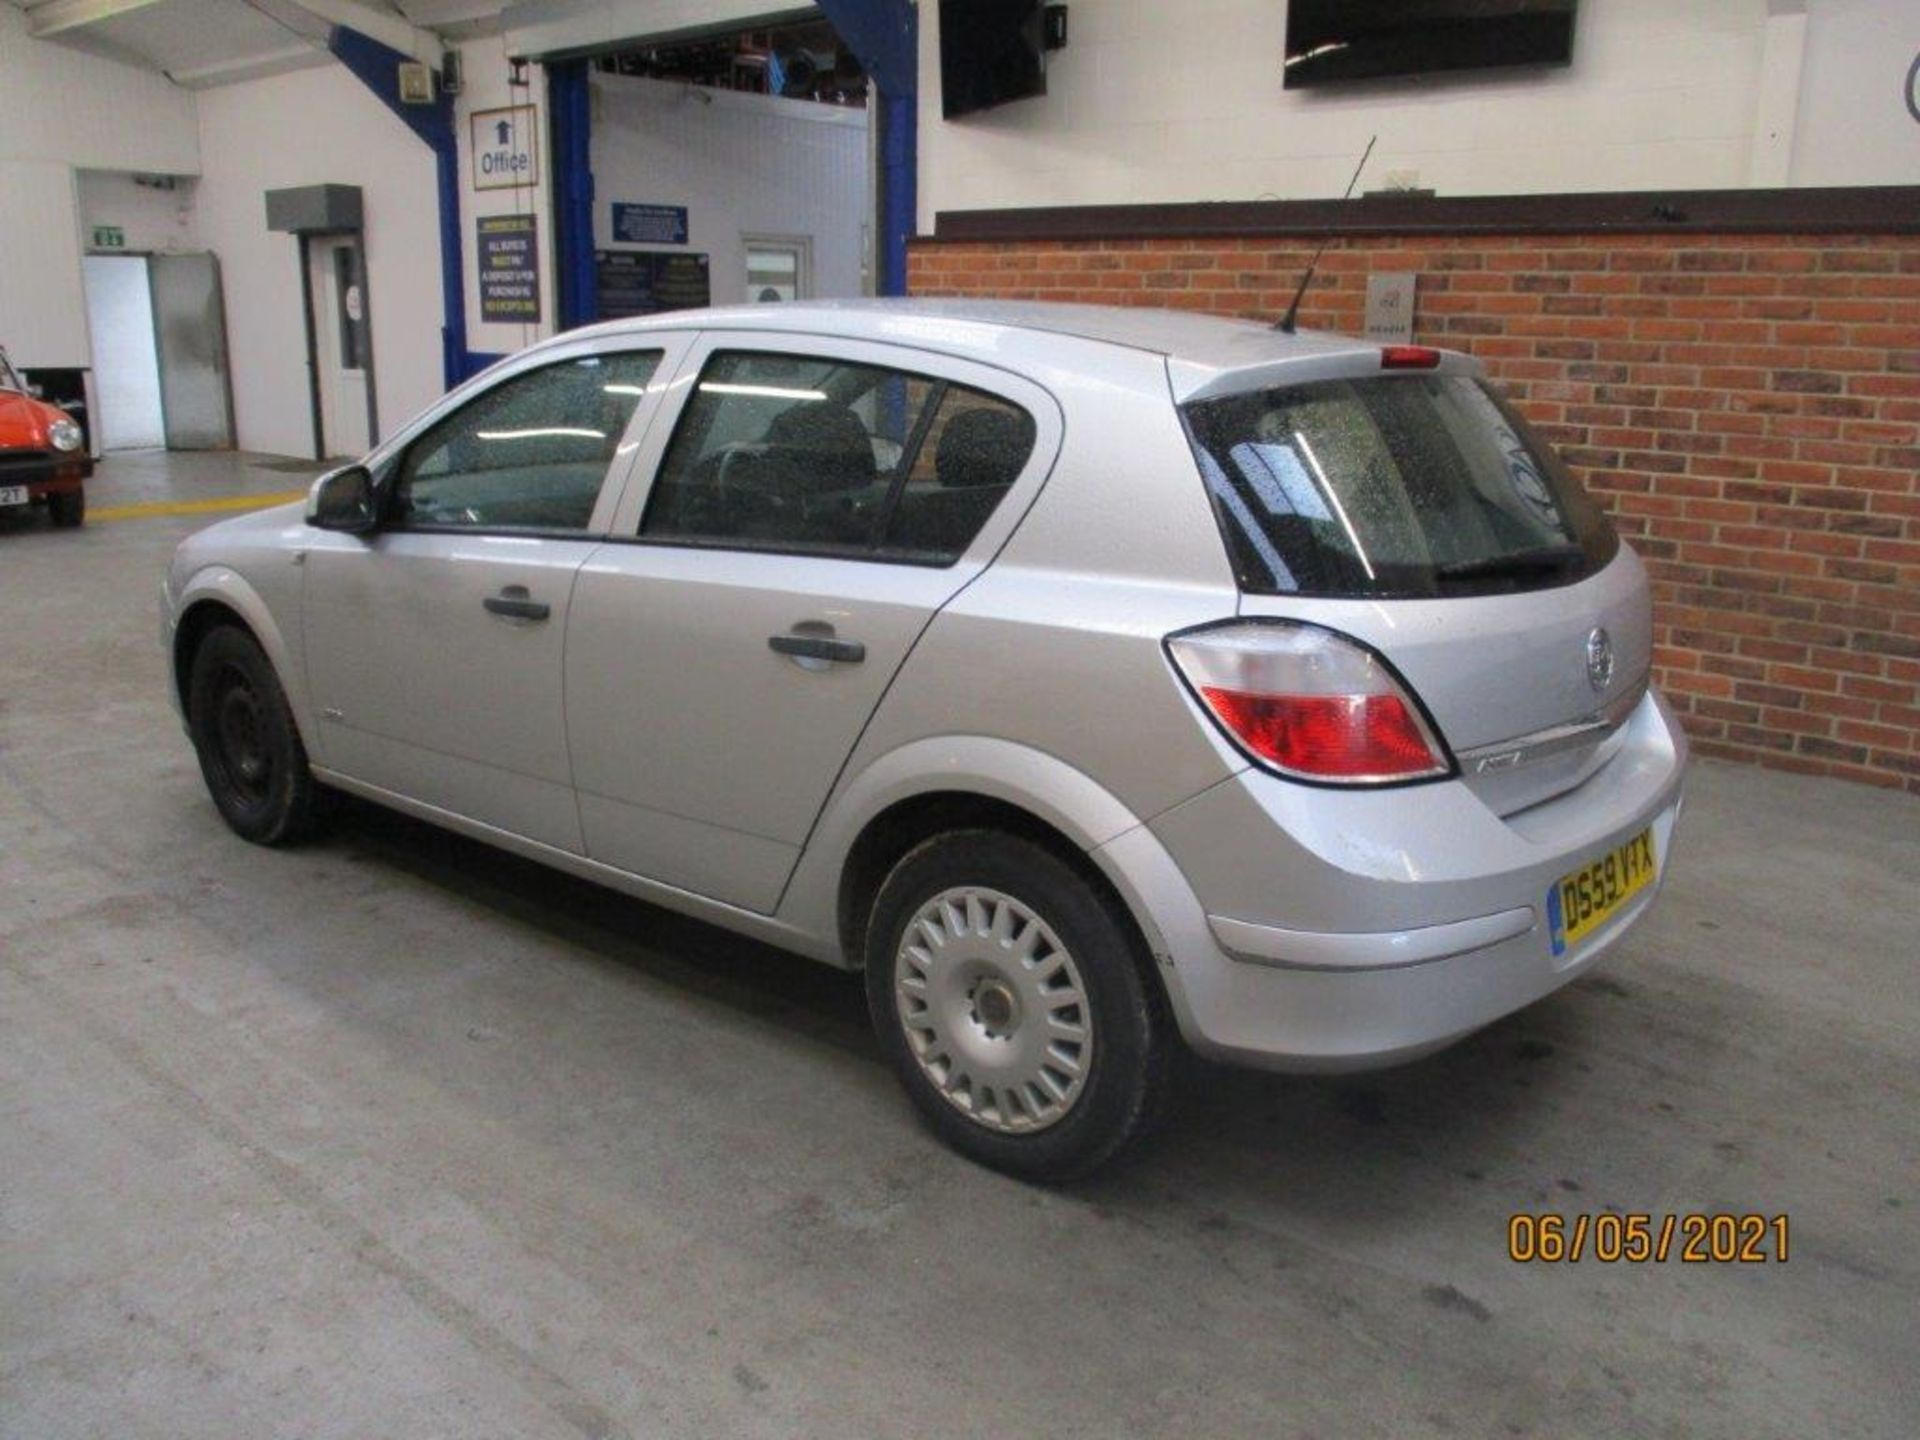 10 59 Vauxhall Astra Life - Image 4 of 14